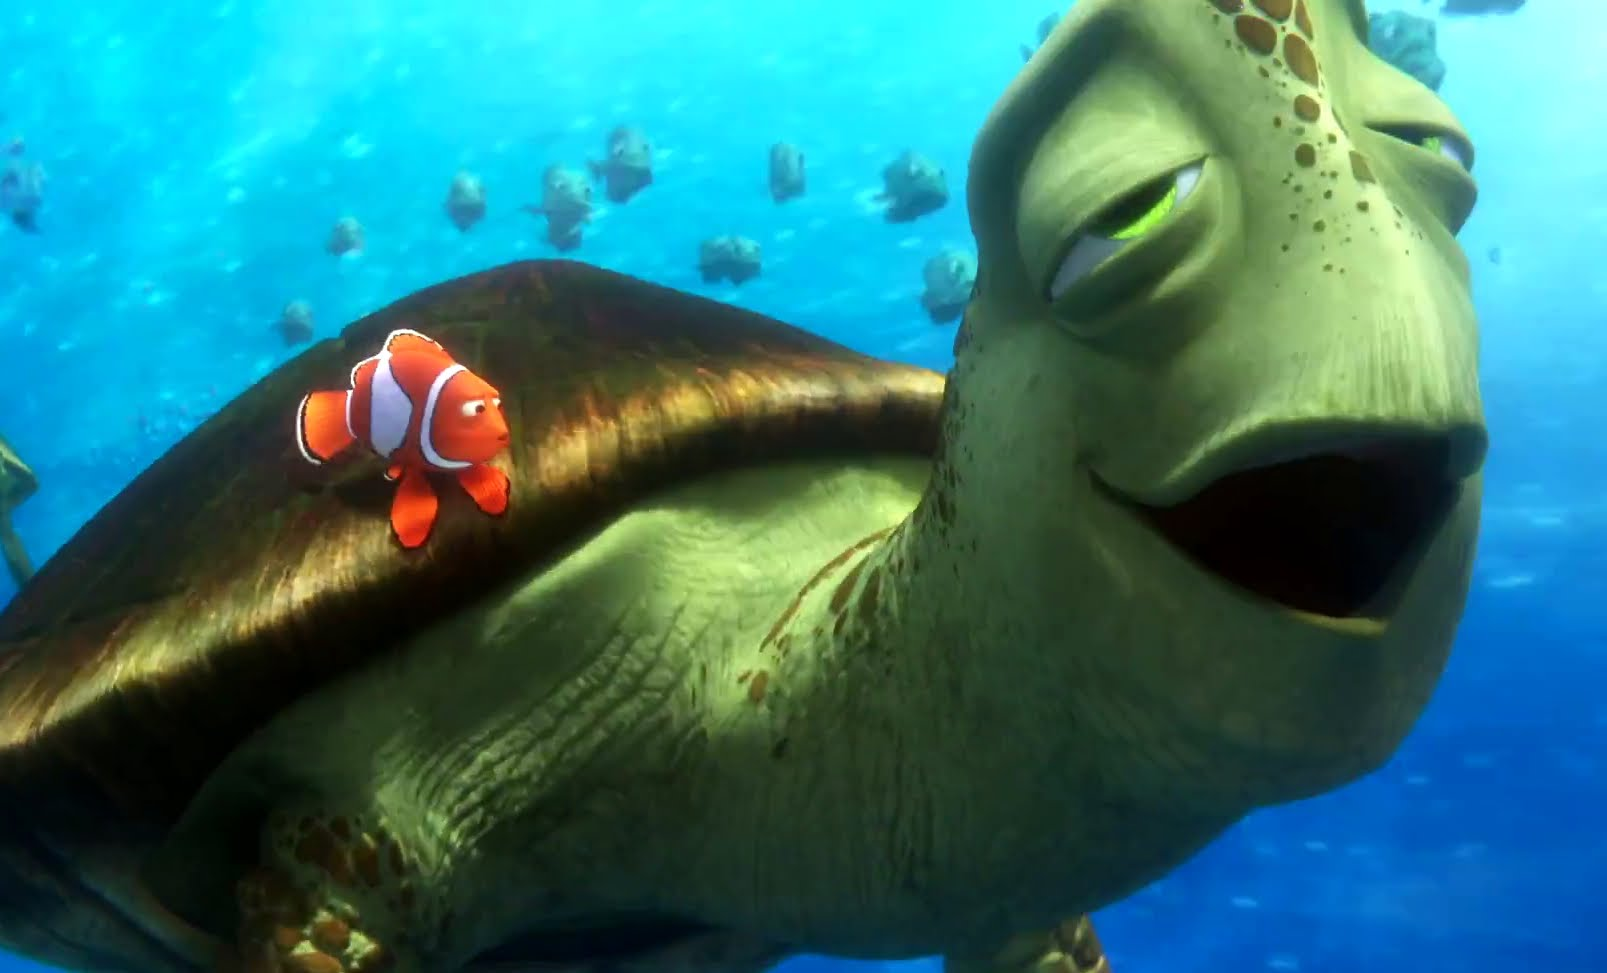 Finding dory movie pictures